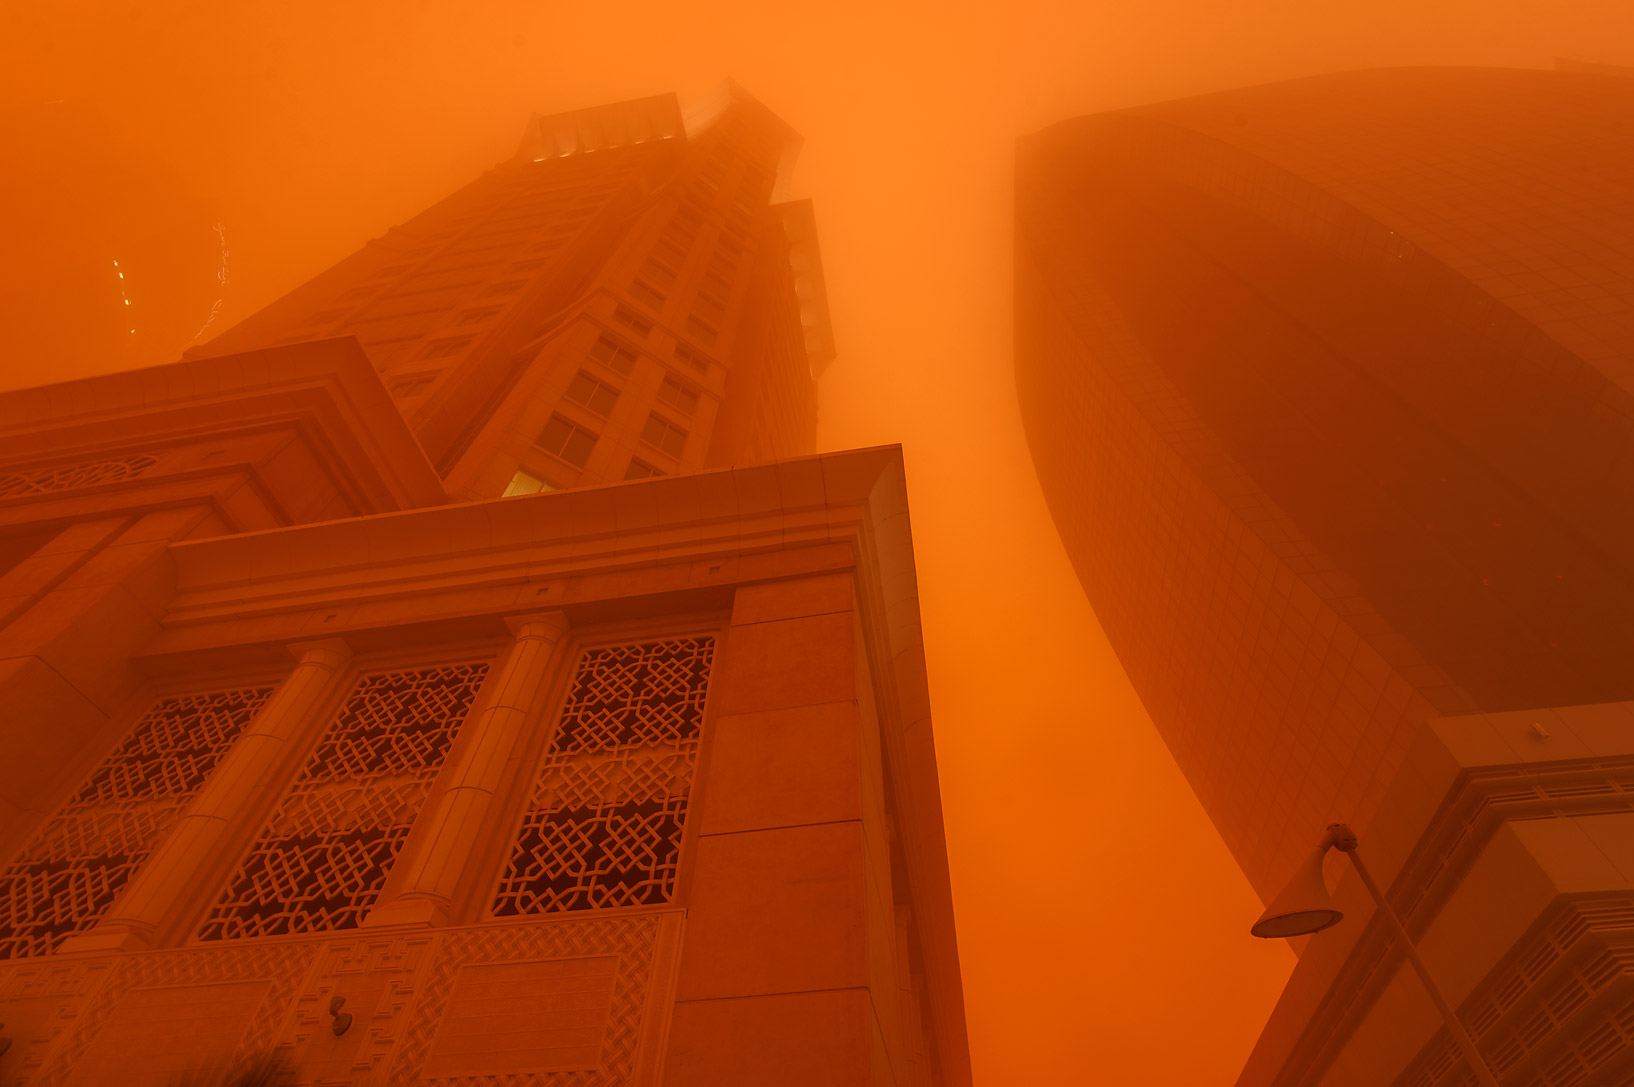 Al Gassar and Al Huda Engineering Works towers in West Bay in orange dust. Doha, Qatar